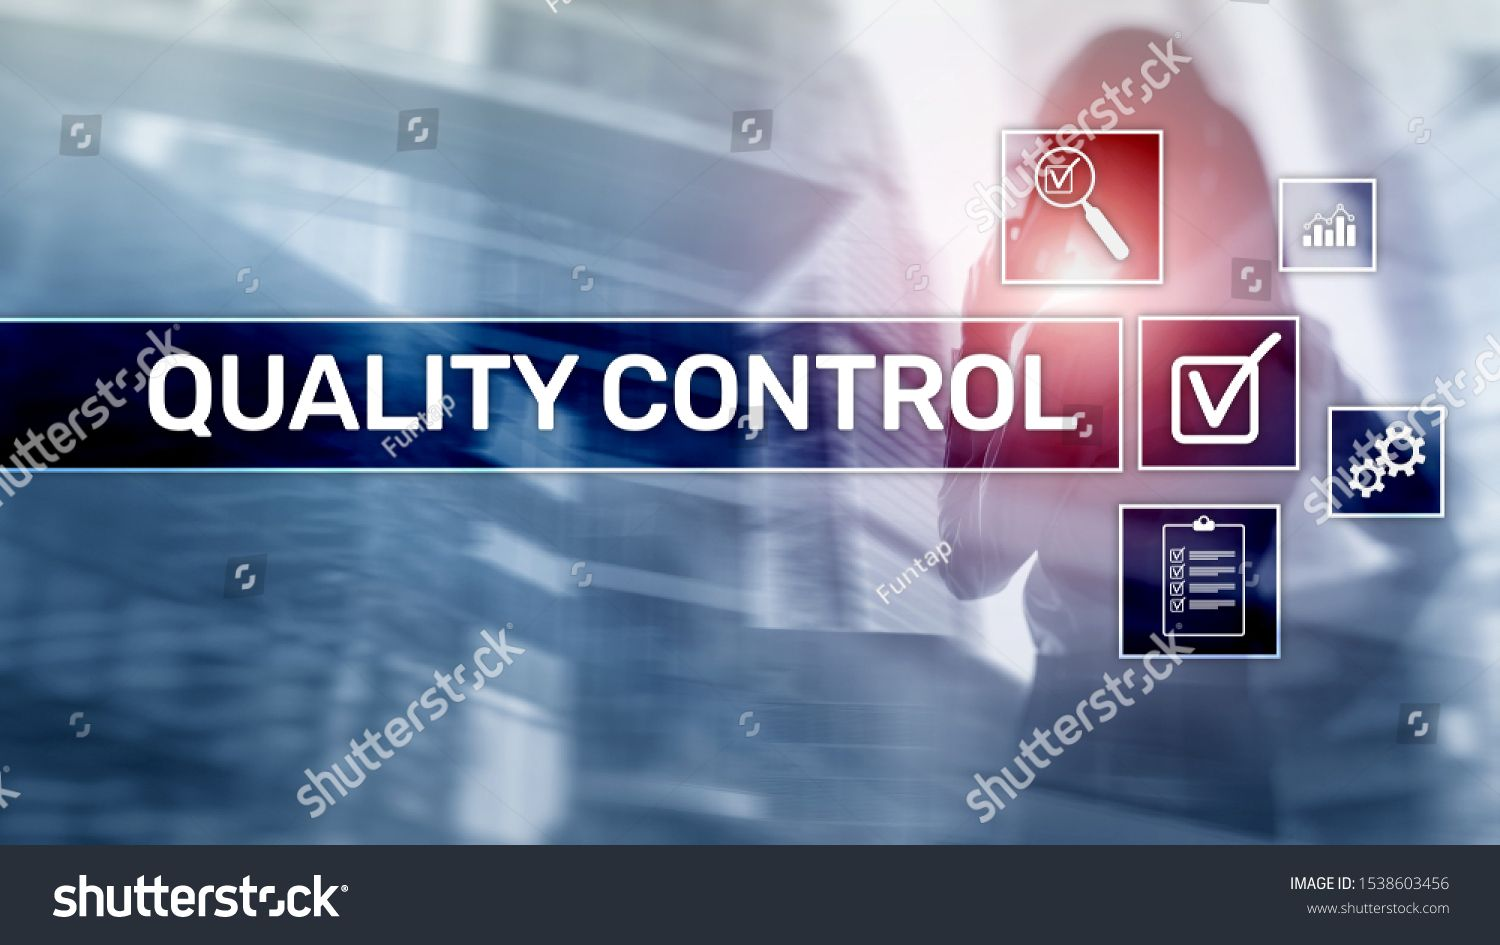 Quality Control And Assurance Standardisation Guarantee Standards Business And Technology Concept Ad Sponsore Photo Editing Stock Photos Wedding Vector